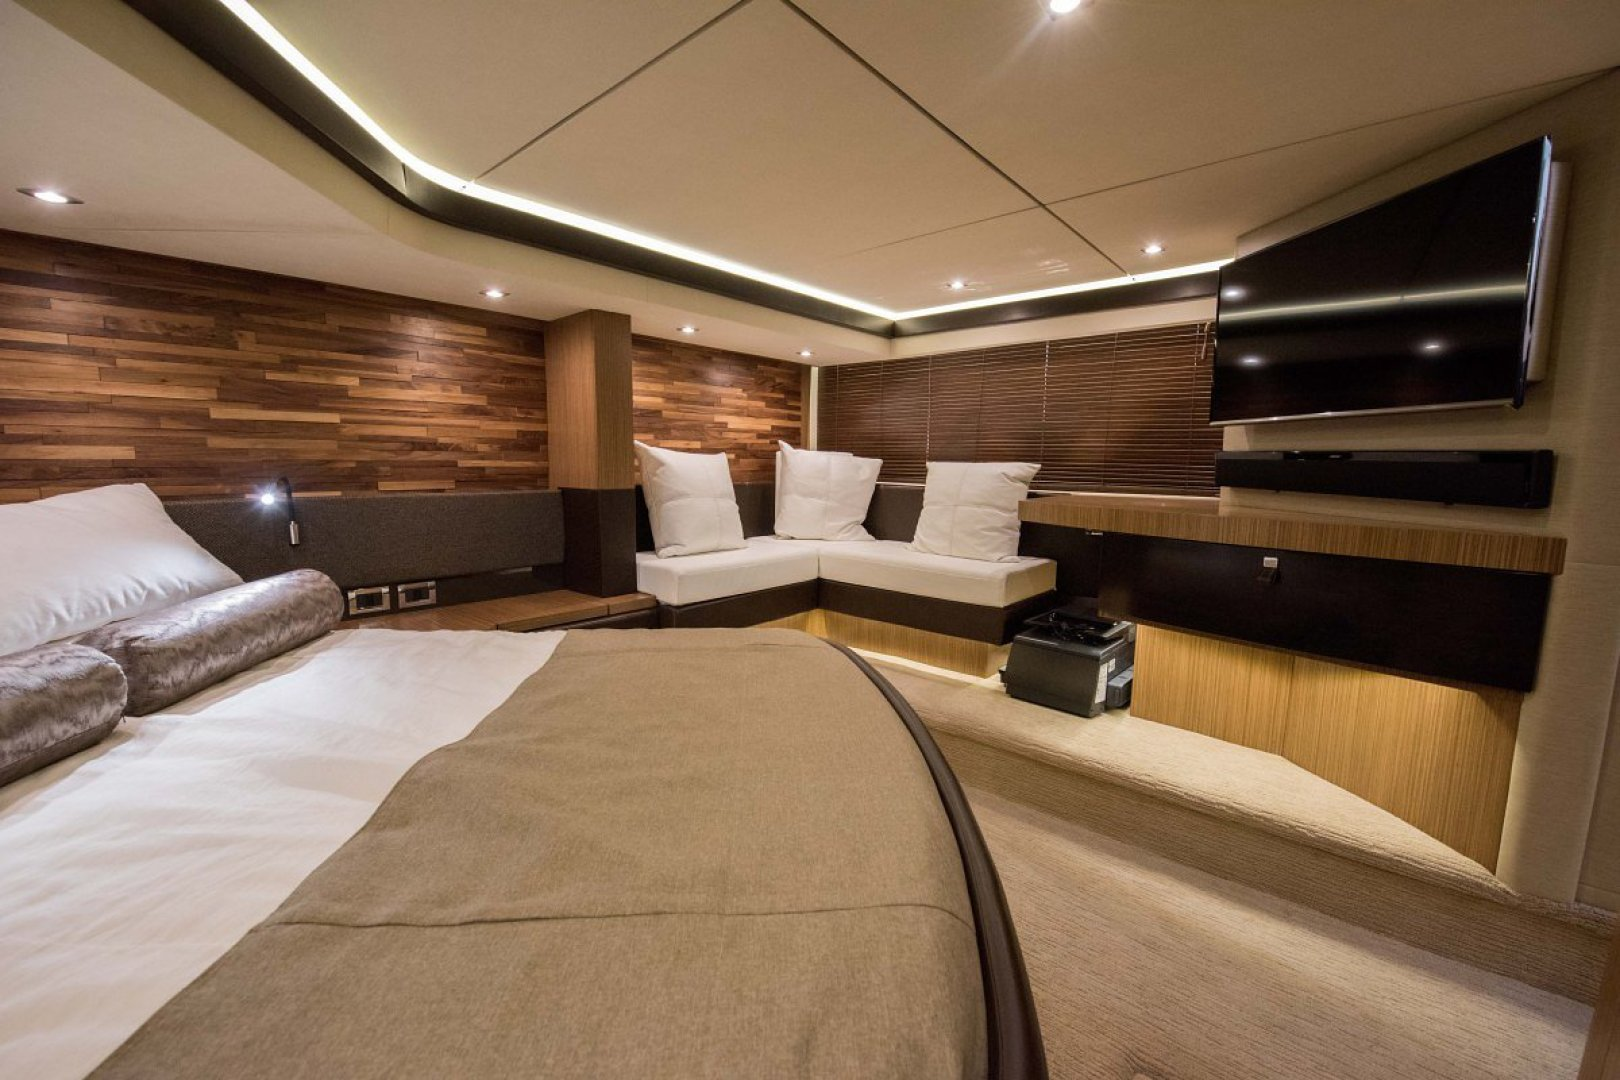 Sea Ray-L590 Fly 2016-2016 Sea Ray L590 Fly Ft. Lauderdale-Florida-United States-1284633 | Thumbnail